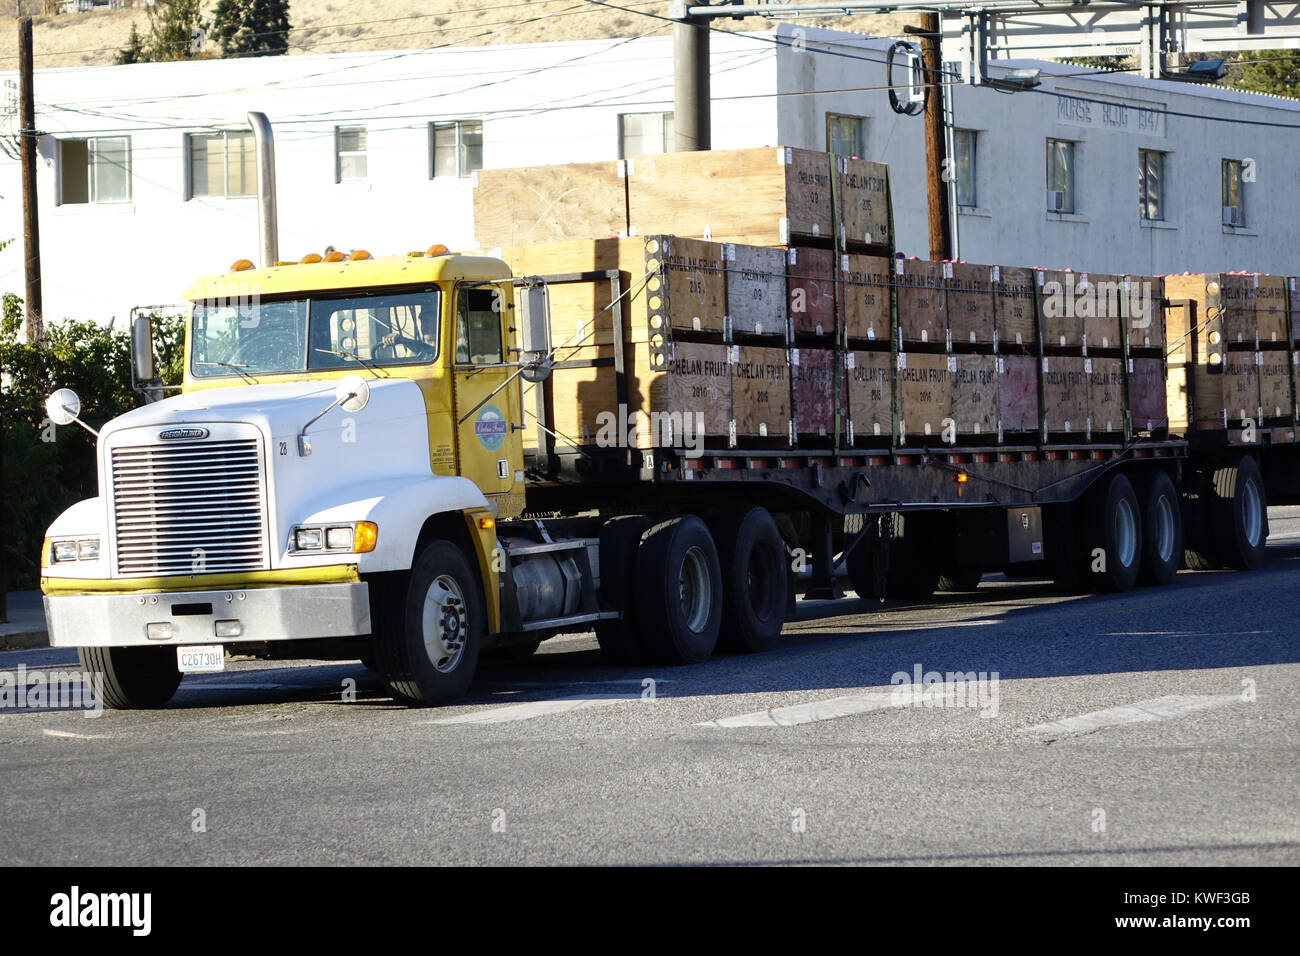 A Freightliner semi hauling apples to the apple shed in Chelan, Washington. - Stock Image